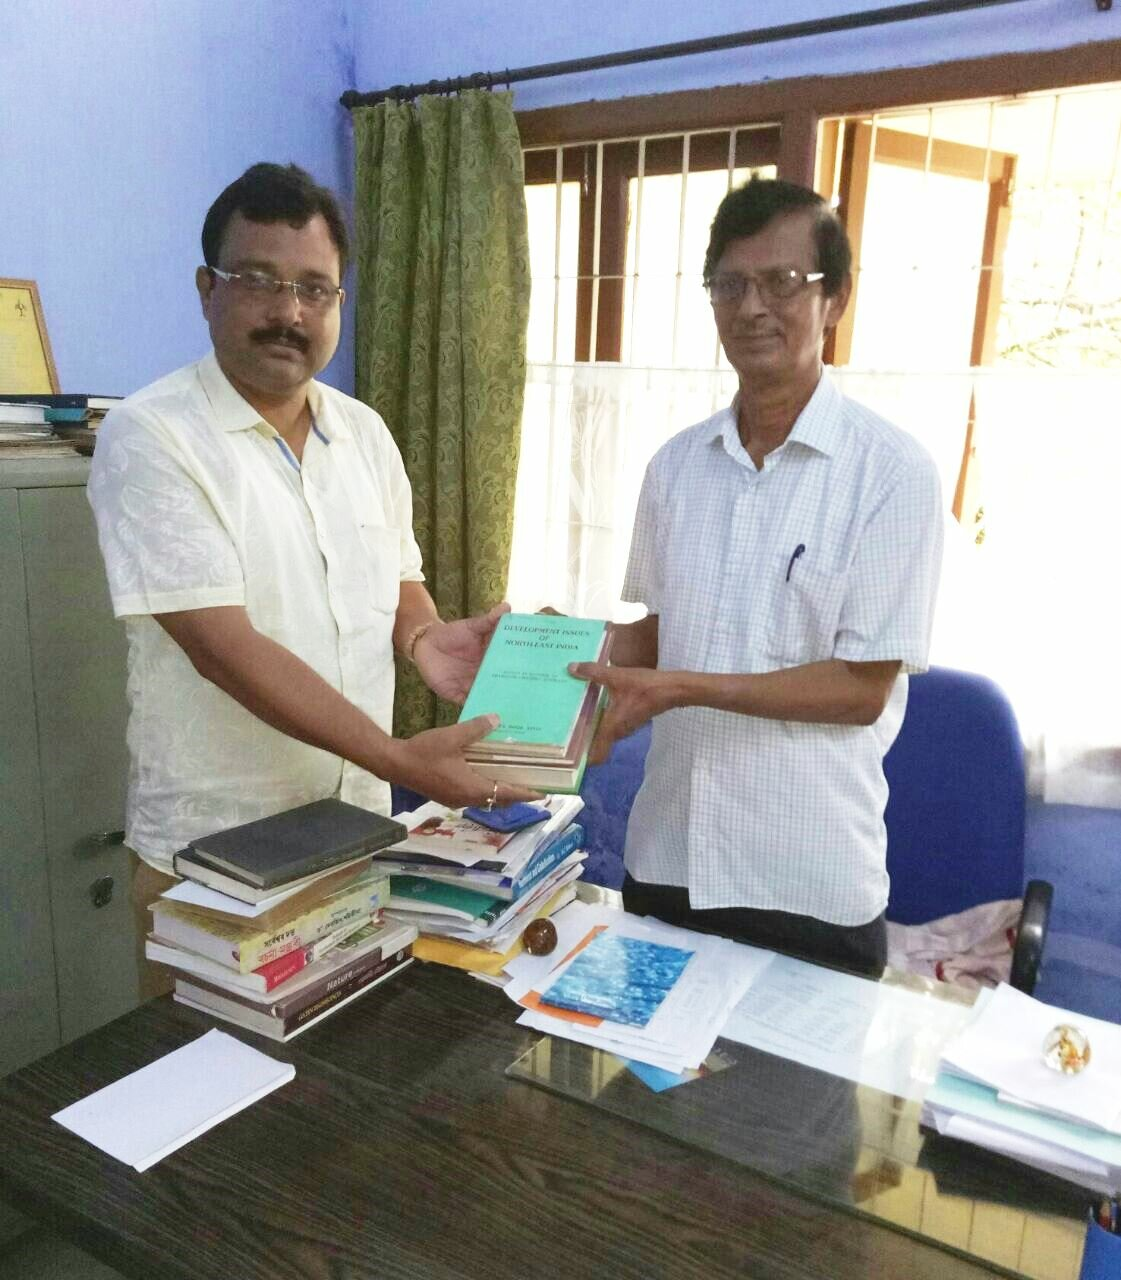 http://majulicollege.org/wp-content/uploads/2017/08/book-donation.jpg